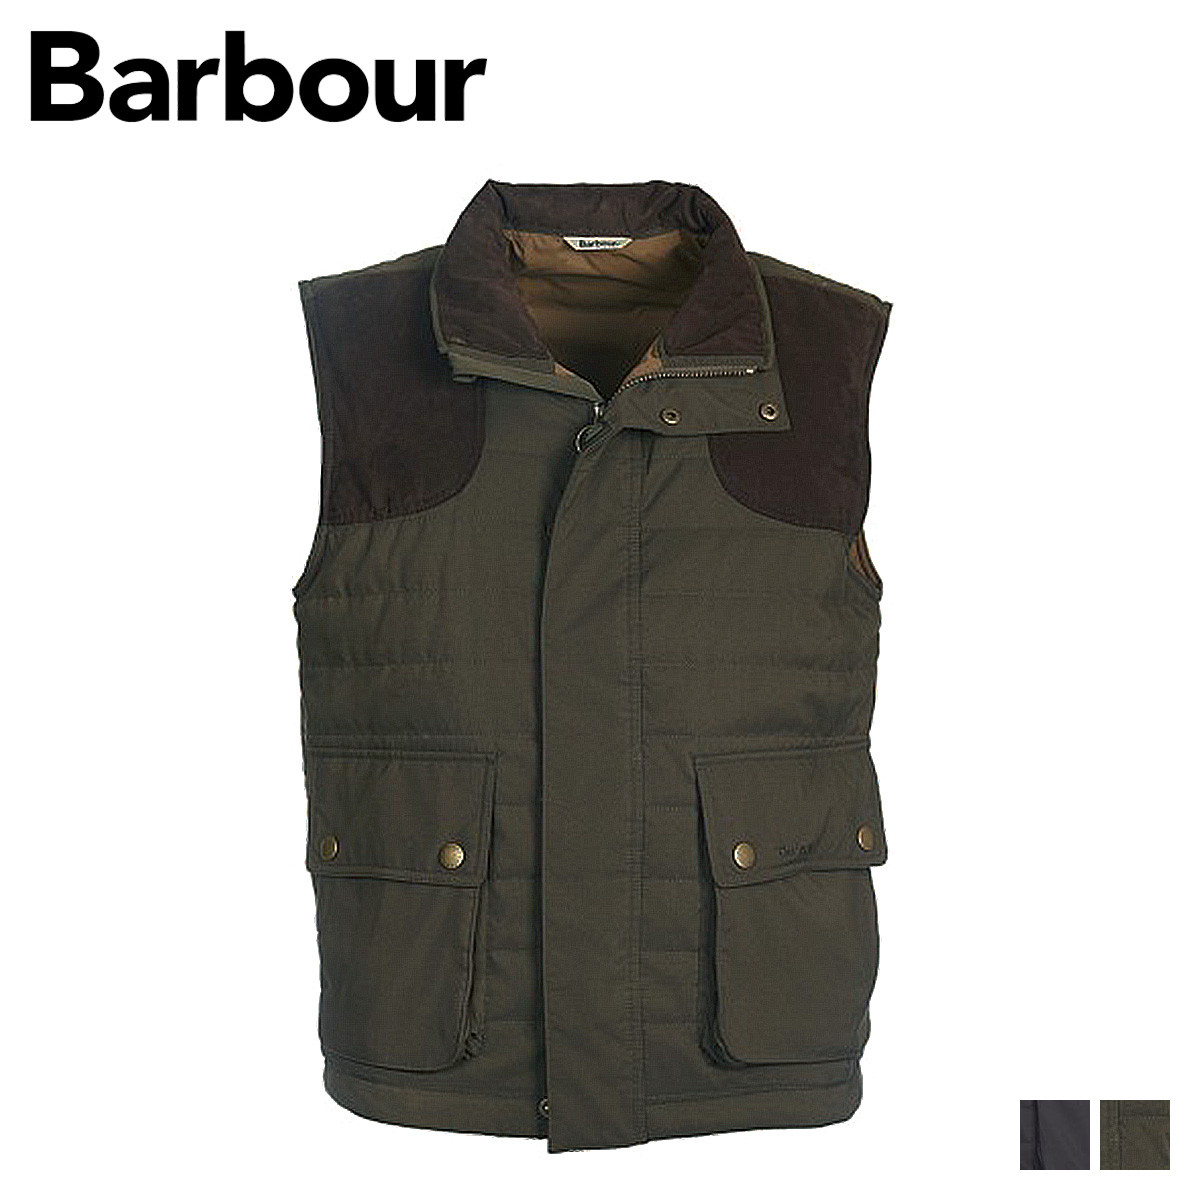 Barbour バブアー ジャケット キルトジャケット BARBOUR AVOCET QUILT JAKECT メンズ 【CLEARANCE】